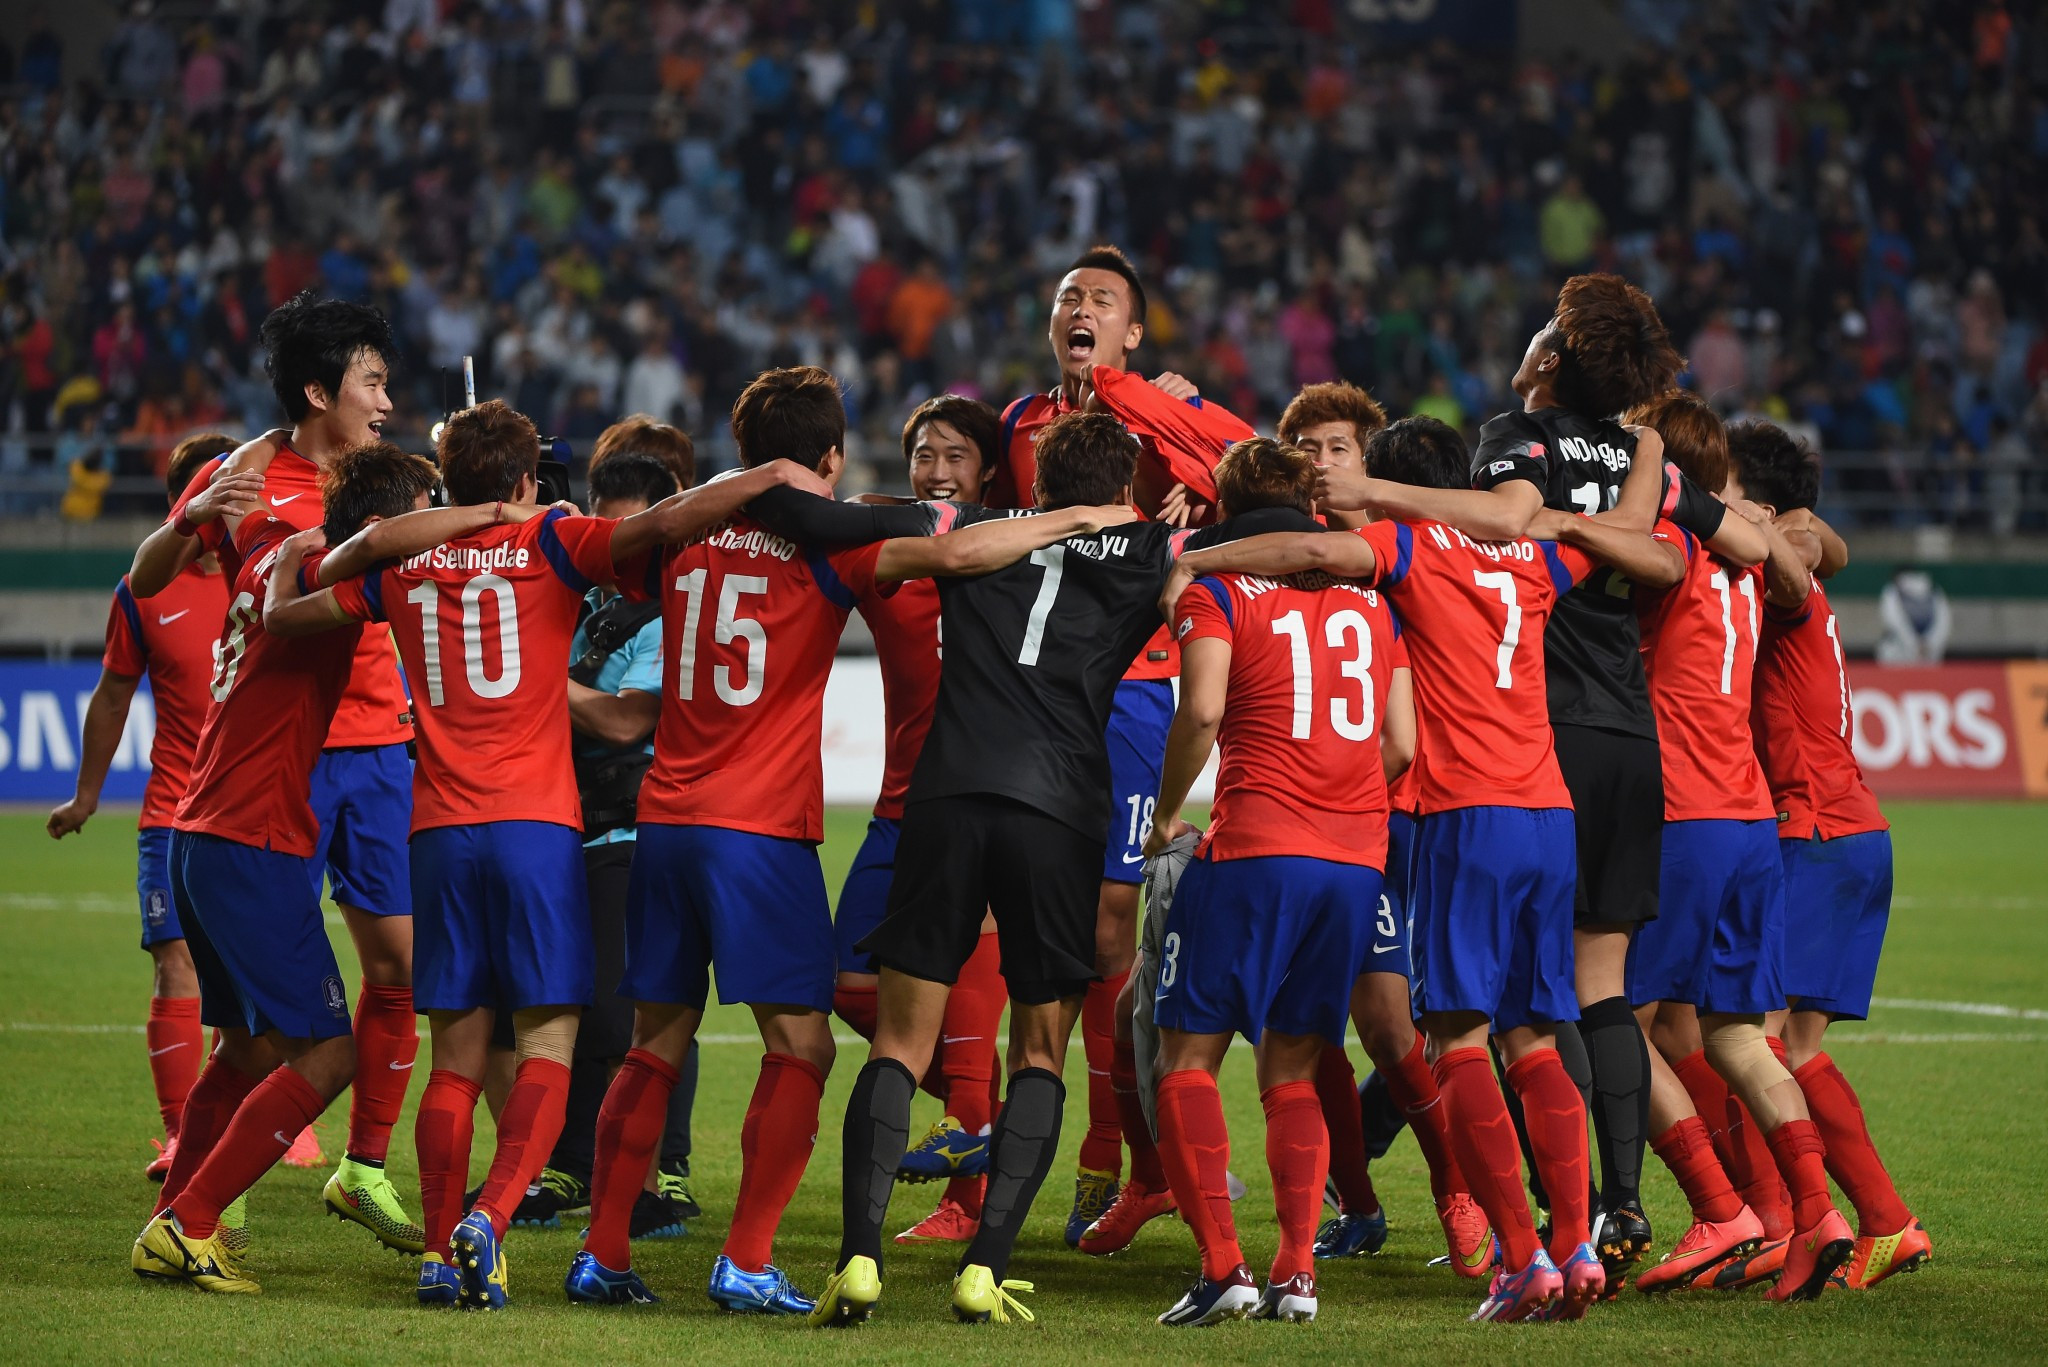 South Korea celebrate winning the Asian Games gold medal in men's football at Incheon 2014 but now will have to find out who they play at this year's tournament at Jakarta Palembang after the AFC ordered a redraw ©Getty Images